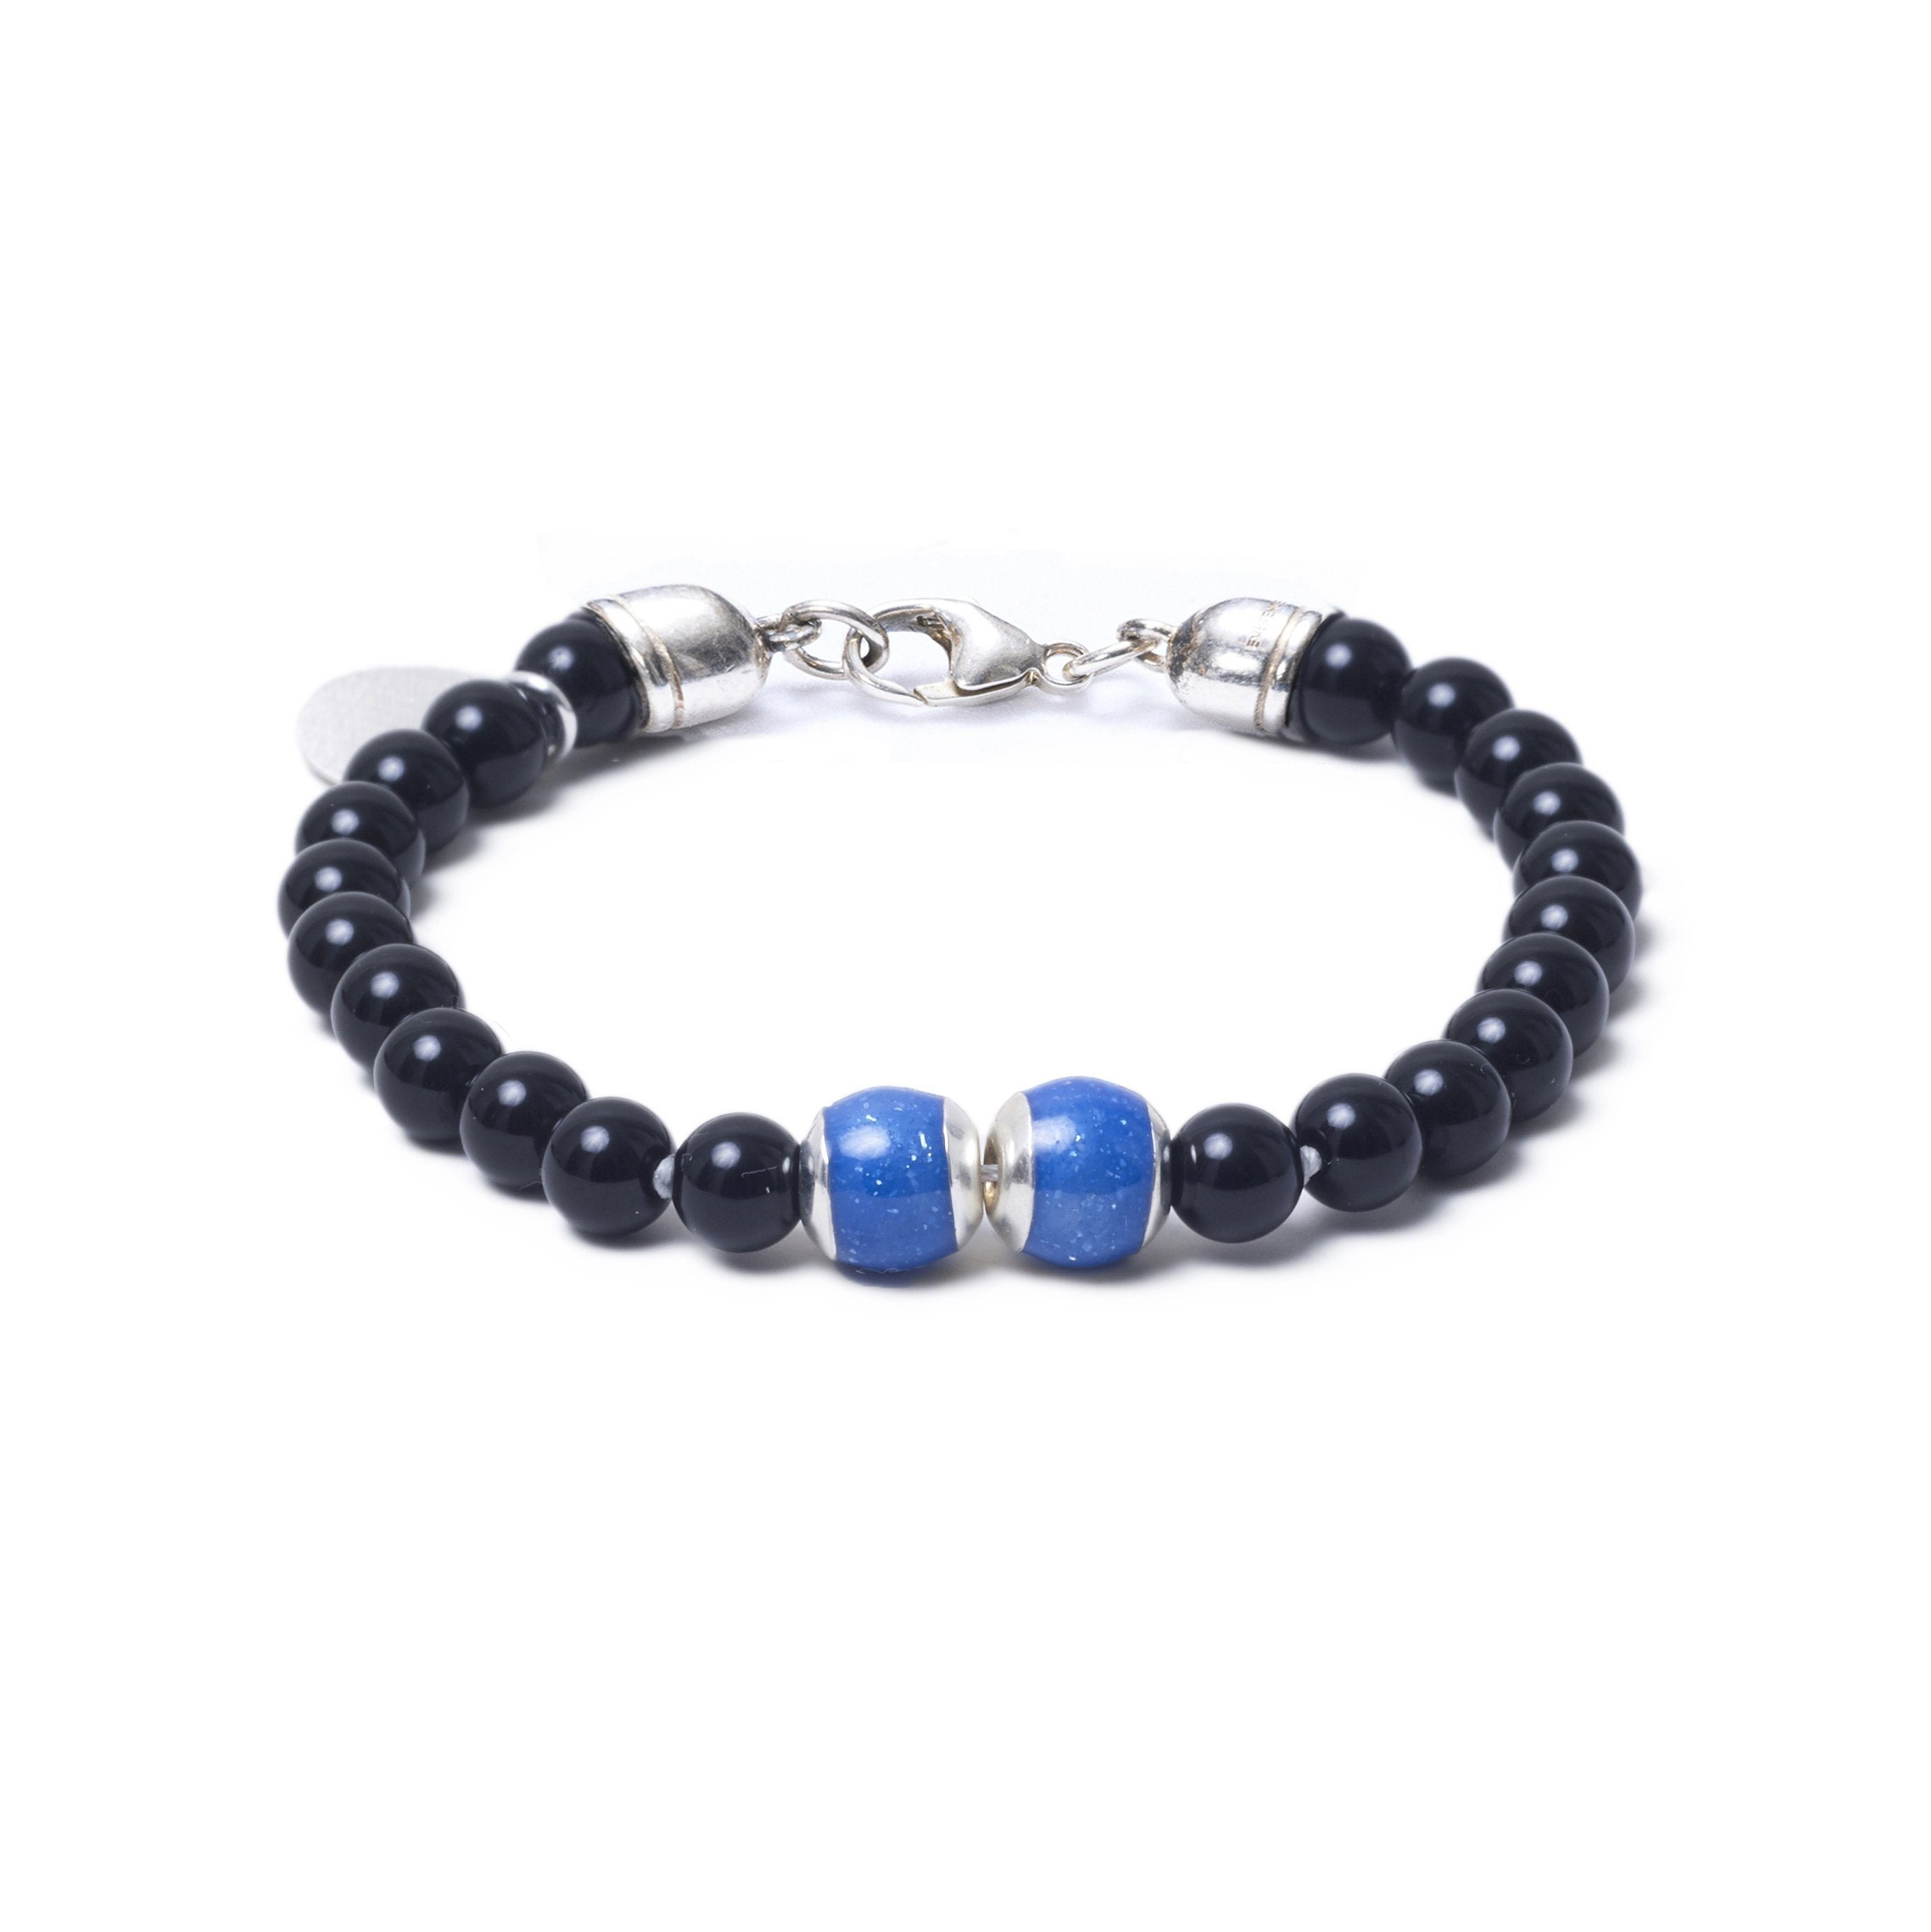 Onyx, Two Everence Beads everence.life Blue Lobster Claw 7